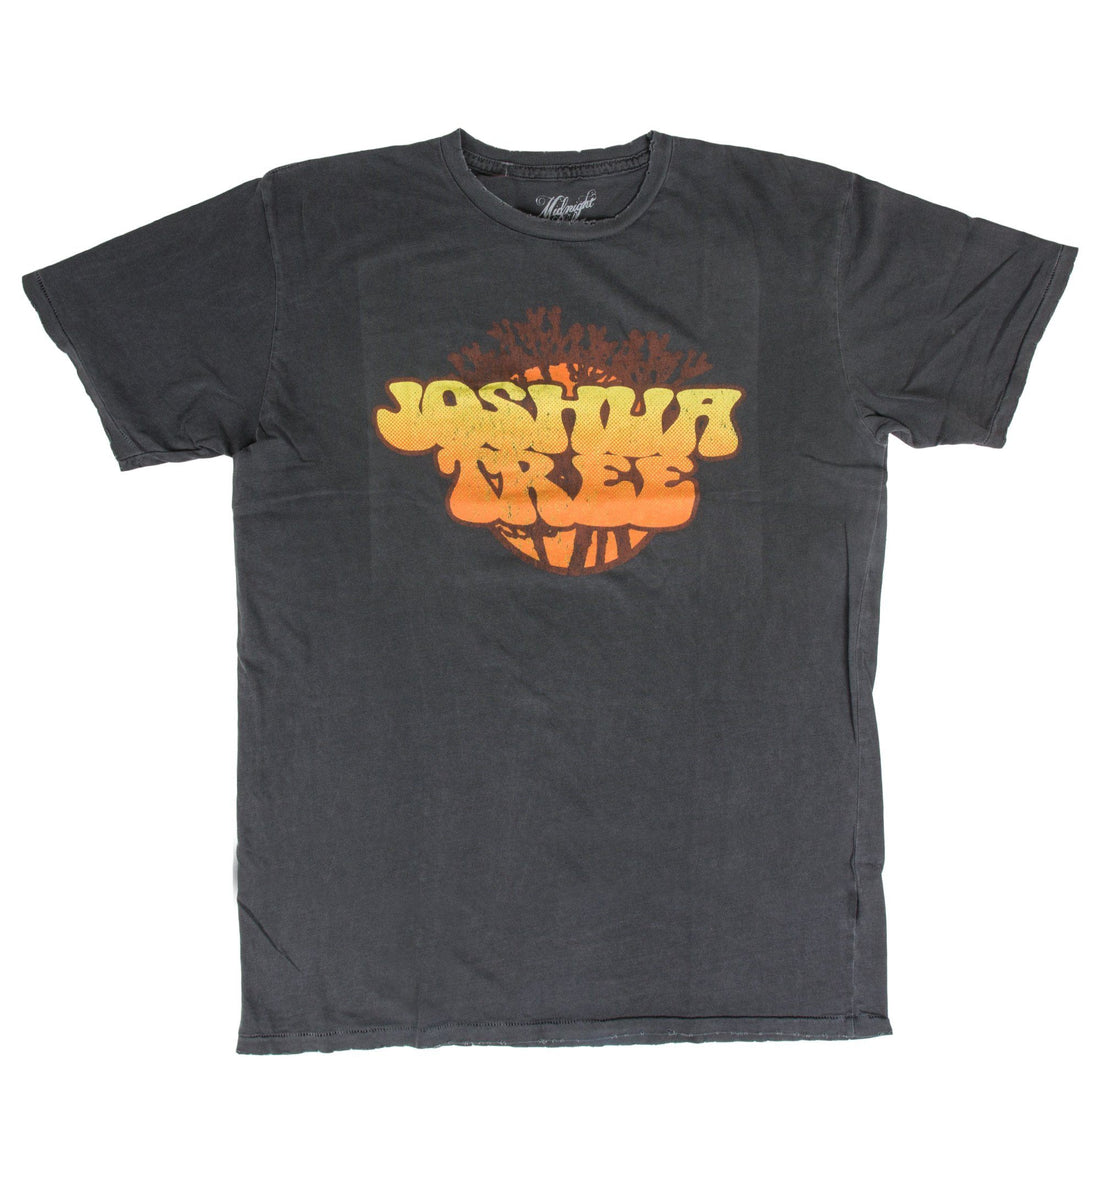 Midnight Rider - Joshua Tree Tee - Tops - Iron and Resin